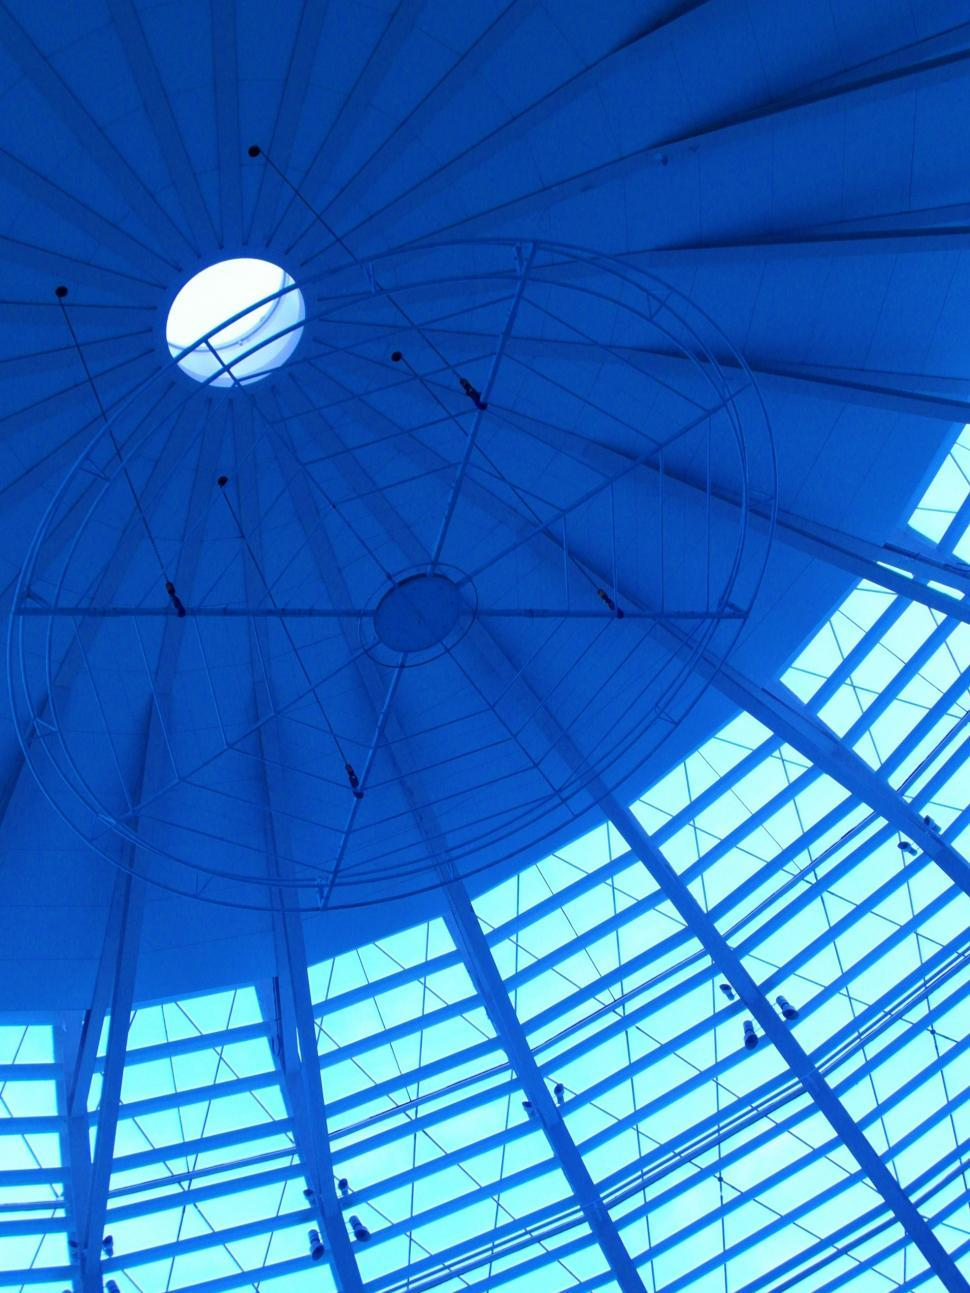 Download Free Stock HD Photo of Glass Dome Interior Online